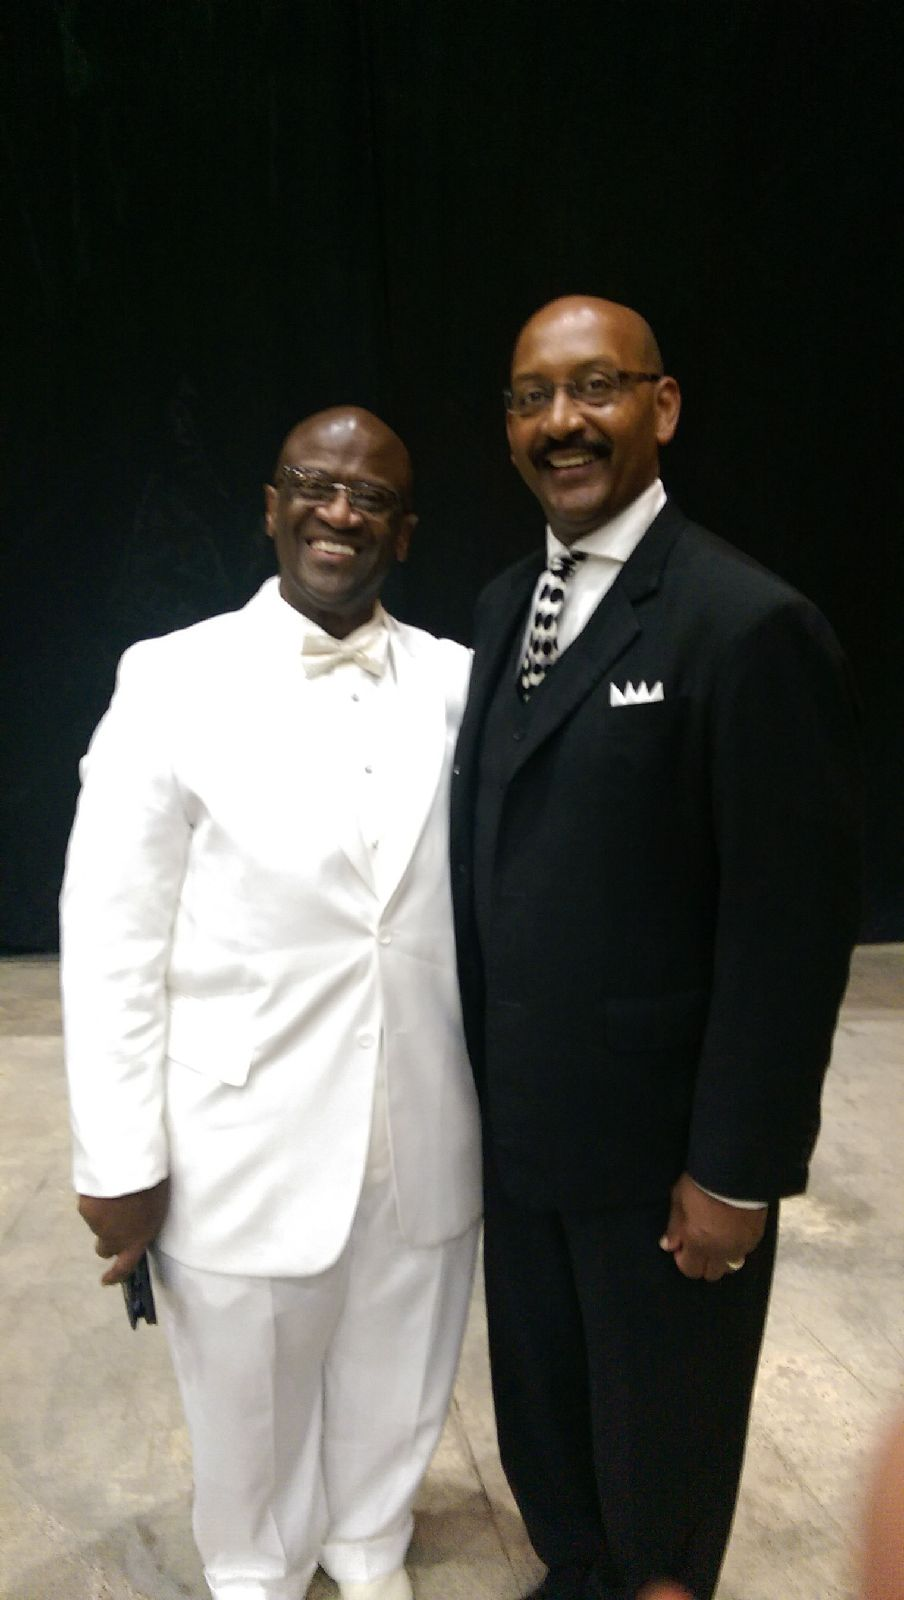 Pastor with Johnny Anderson, Deputy Chief of Staff, Programming and Planning for Louisiana Governor, John Bel Edwards